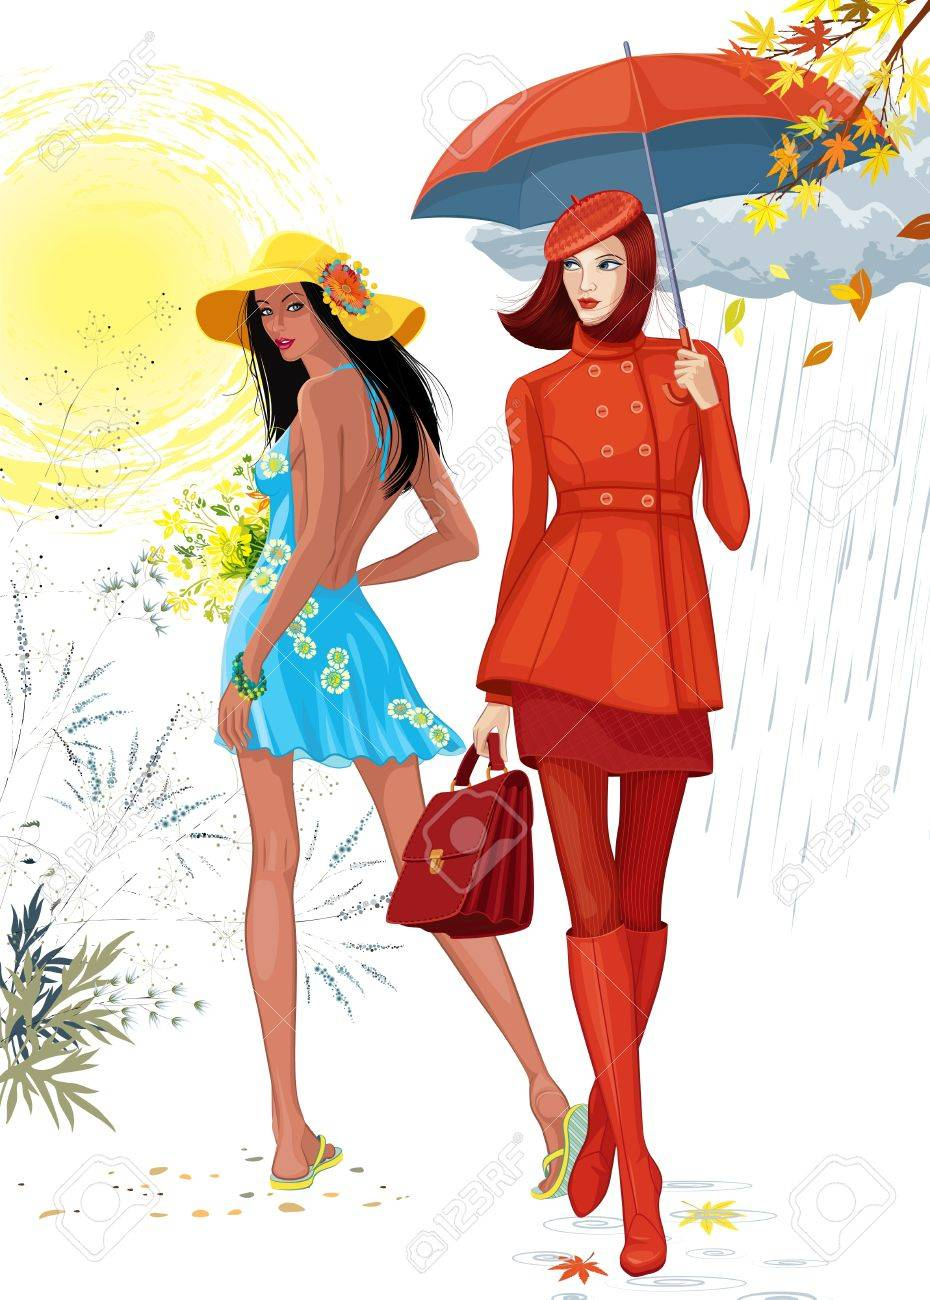 Illustration of two beautiful girls. Brunette girl in a blue dress images the summer time, and the girl in a red clothes with an umbrella images the autumn. Each girl is on a separate layer. Stock Vector - 14474108